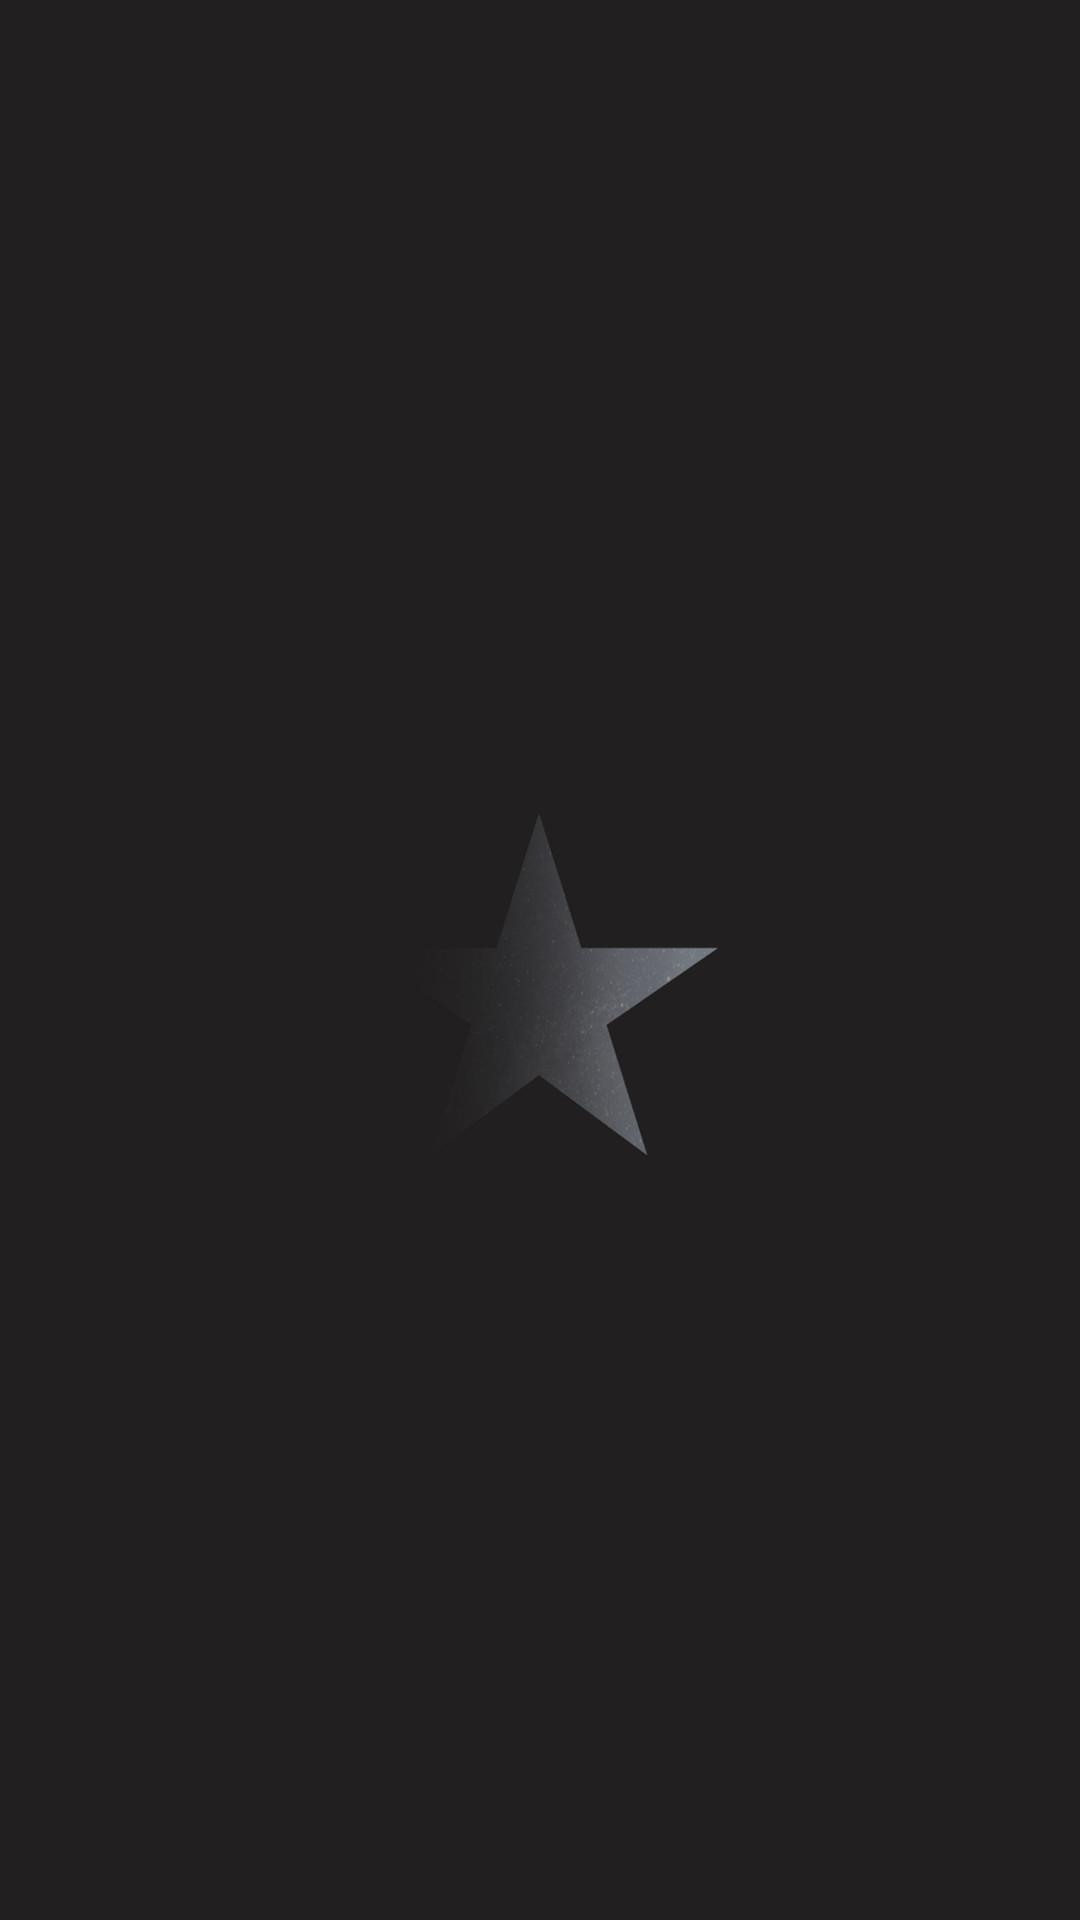 Res: 1080x1920, Here's my attempt to make a Blackstar phone wallpaper. I hope you'll like  it!